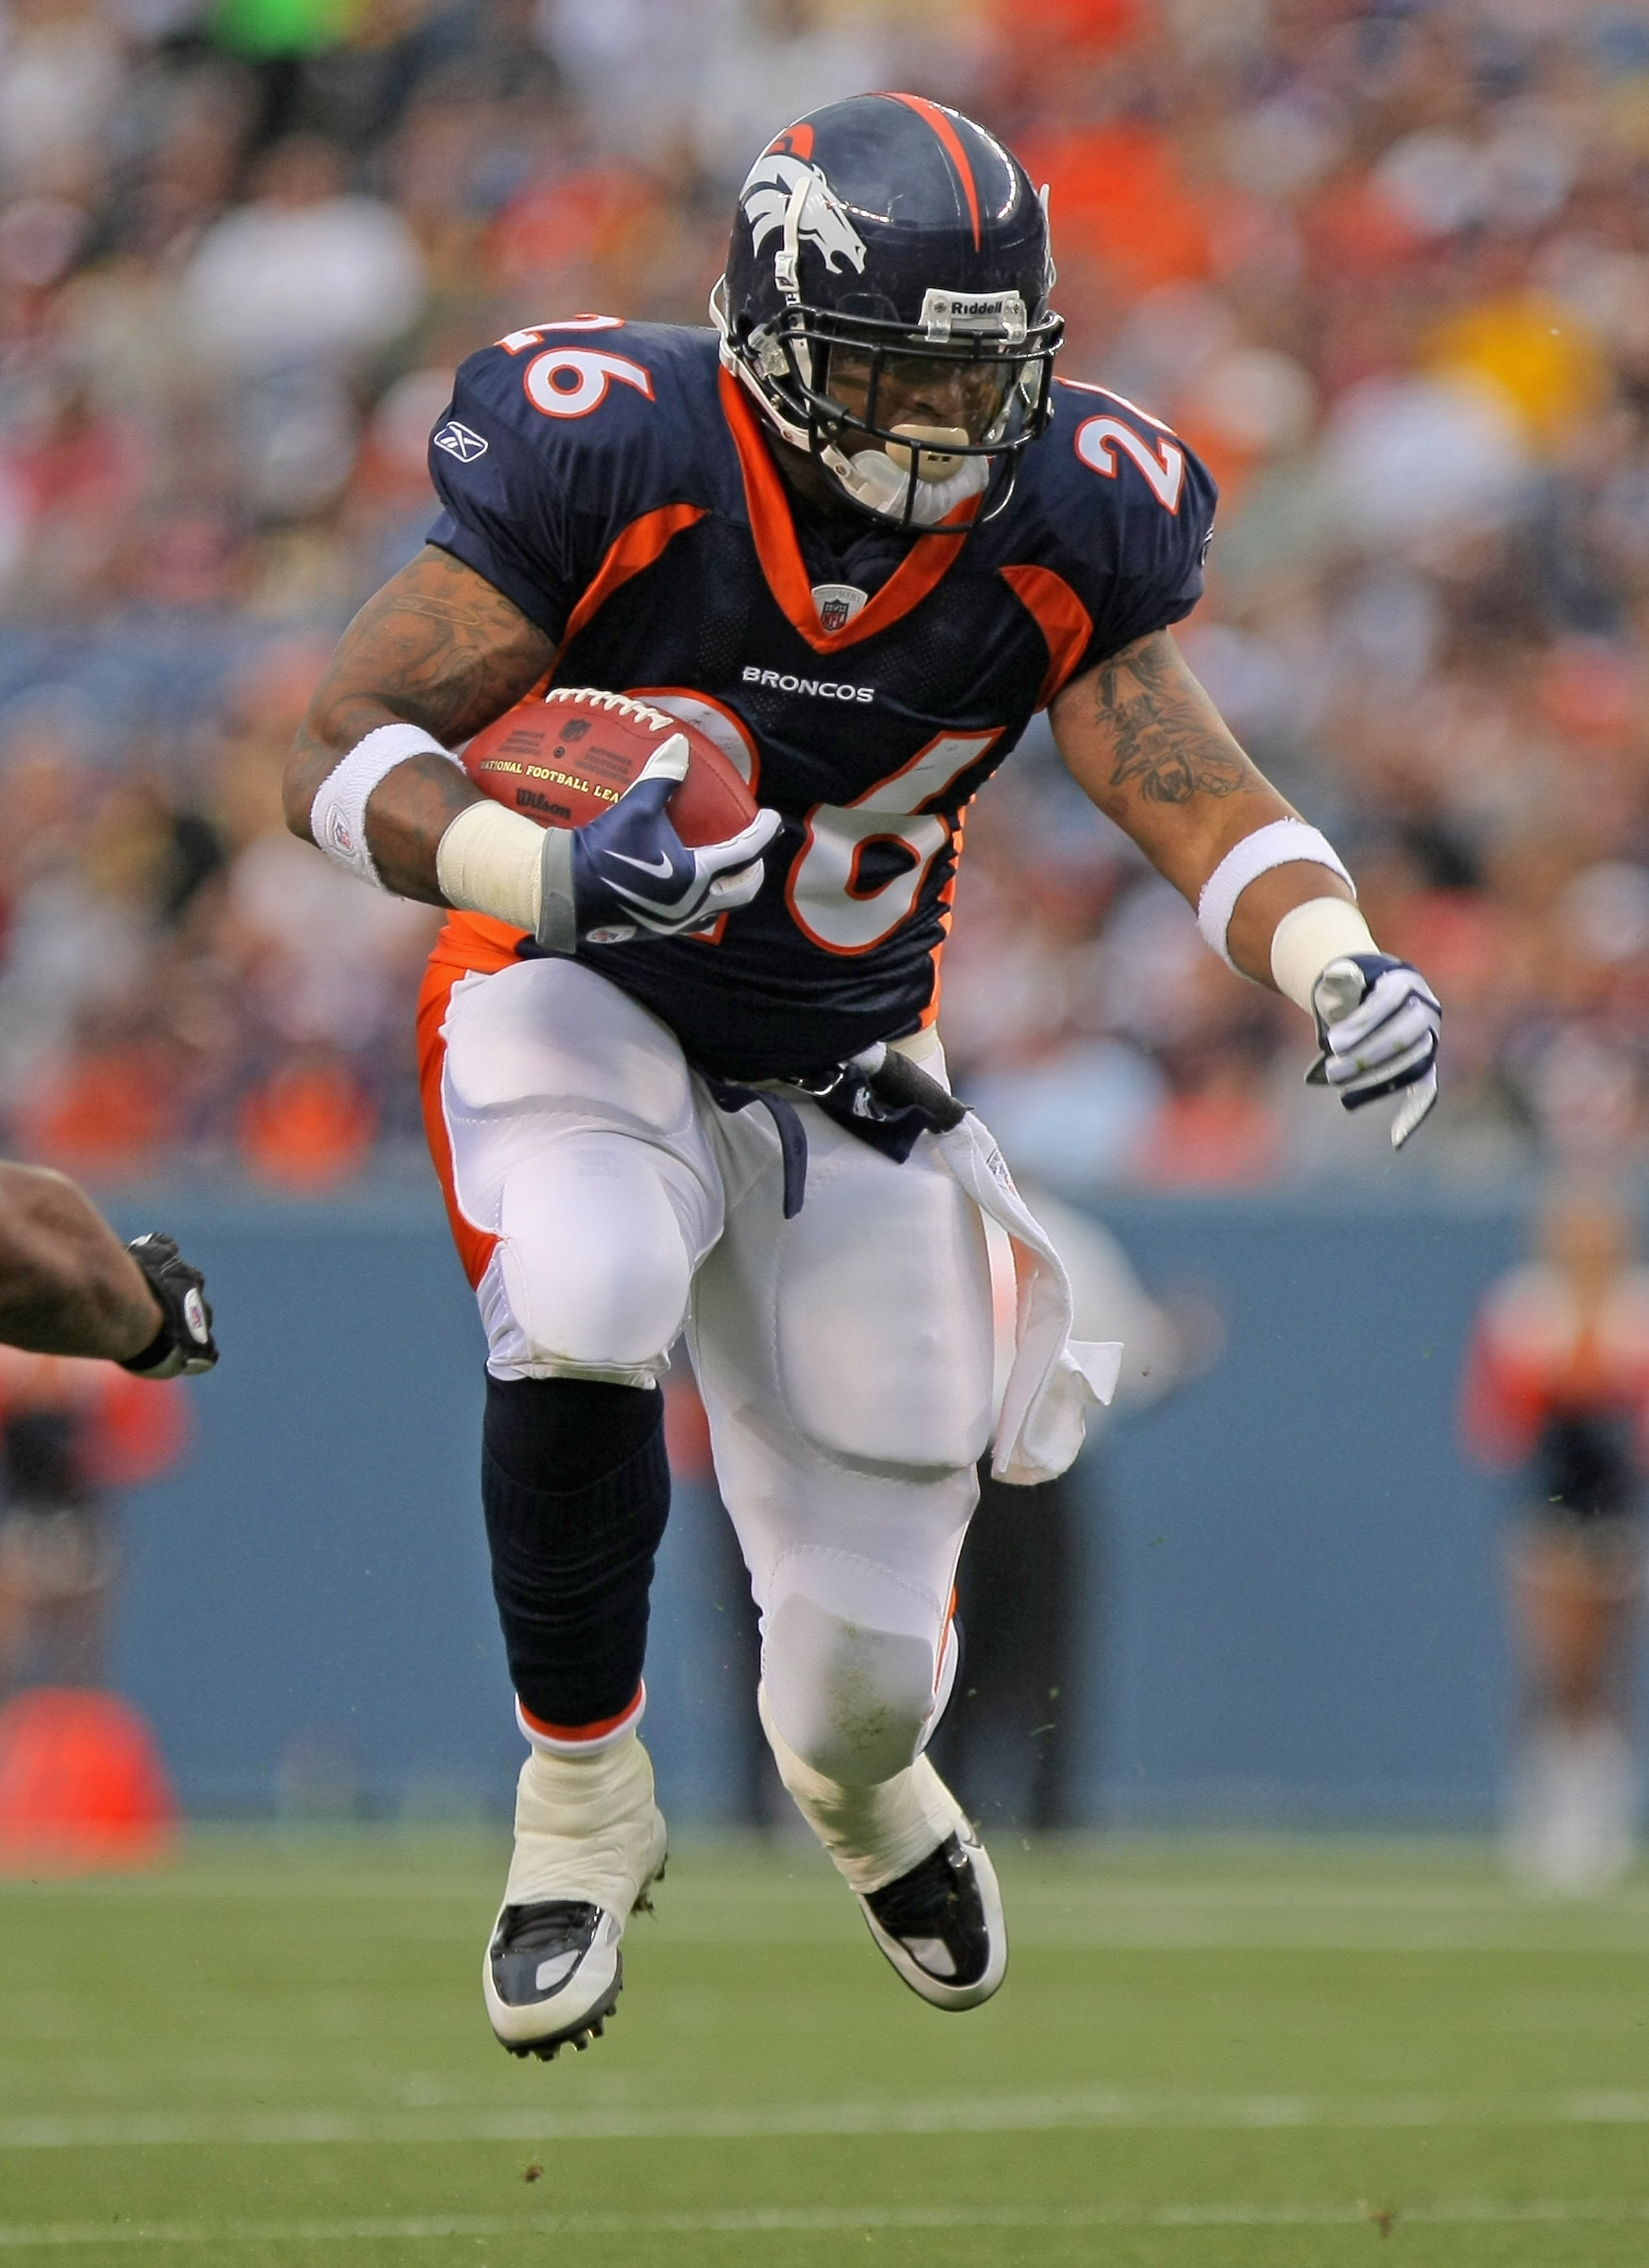 DENVER - AUGUST 29:  Running back LenDale White #26 of the Denver Broncos rushes against the Pittsburgh Steelers during preseason NFL action at INVESCO Field at Mile High on August 29, 2010 in Denver, Colorado.  (Photo by Doug Pensinger/Getty Images)